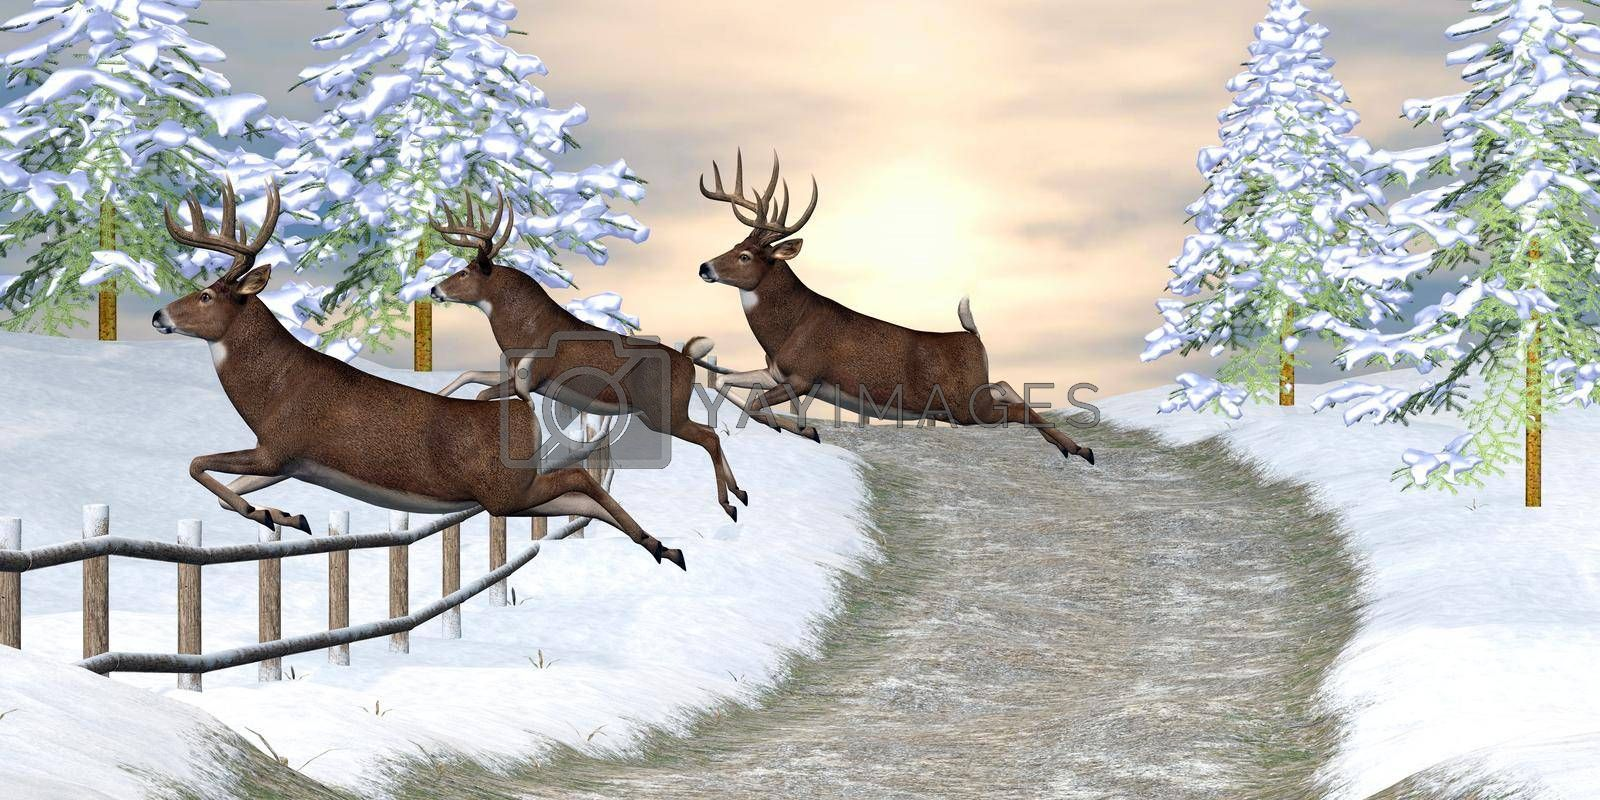 Royalty free image of Whitetail Deer Jumping Fence by Catmando